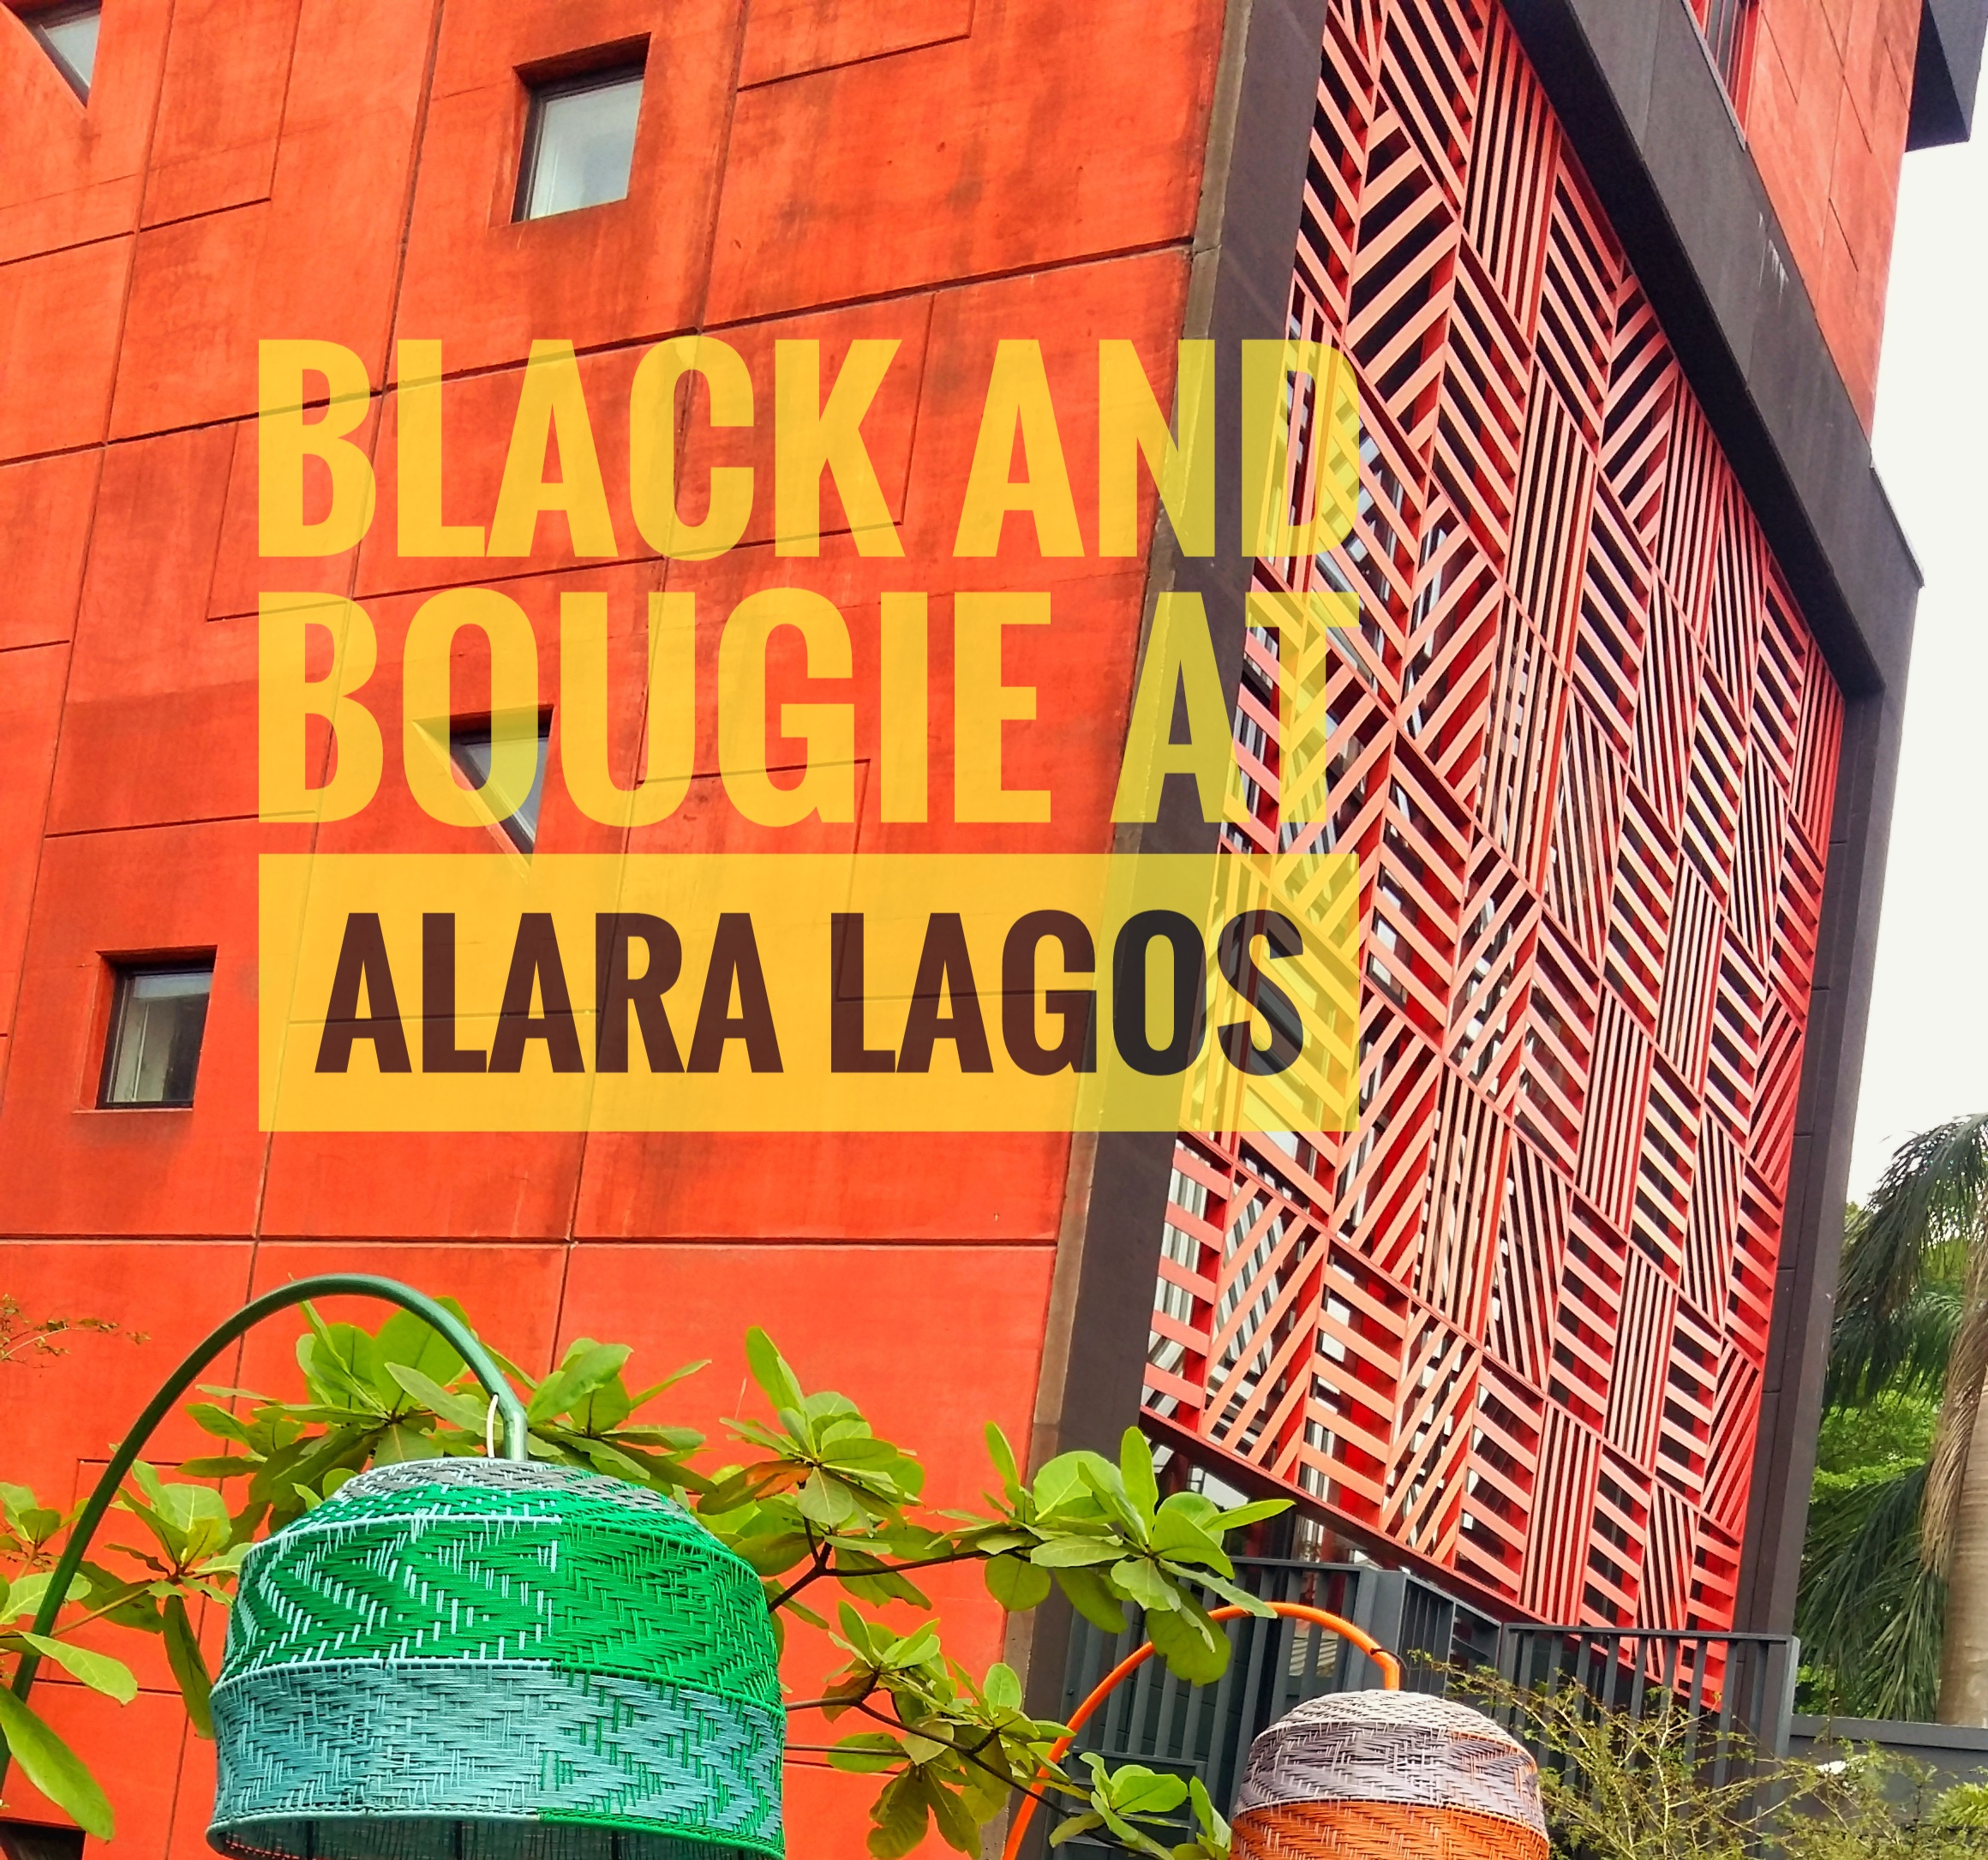 BLACK AND BOUGIE AT ALARA LAGOS